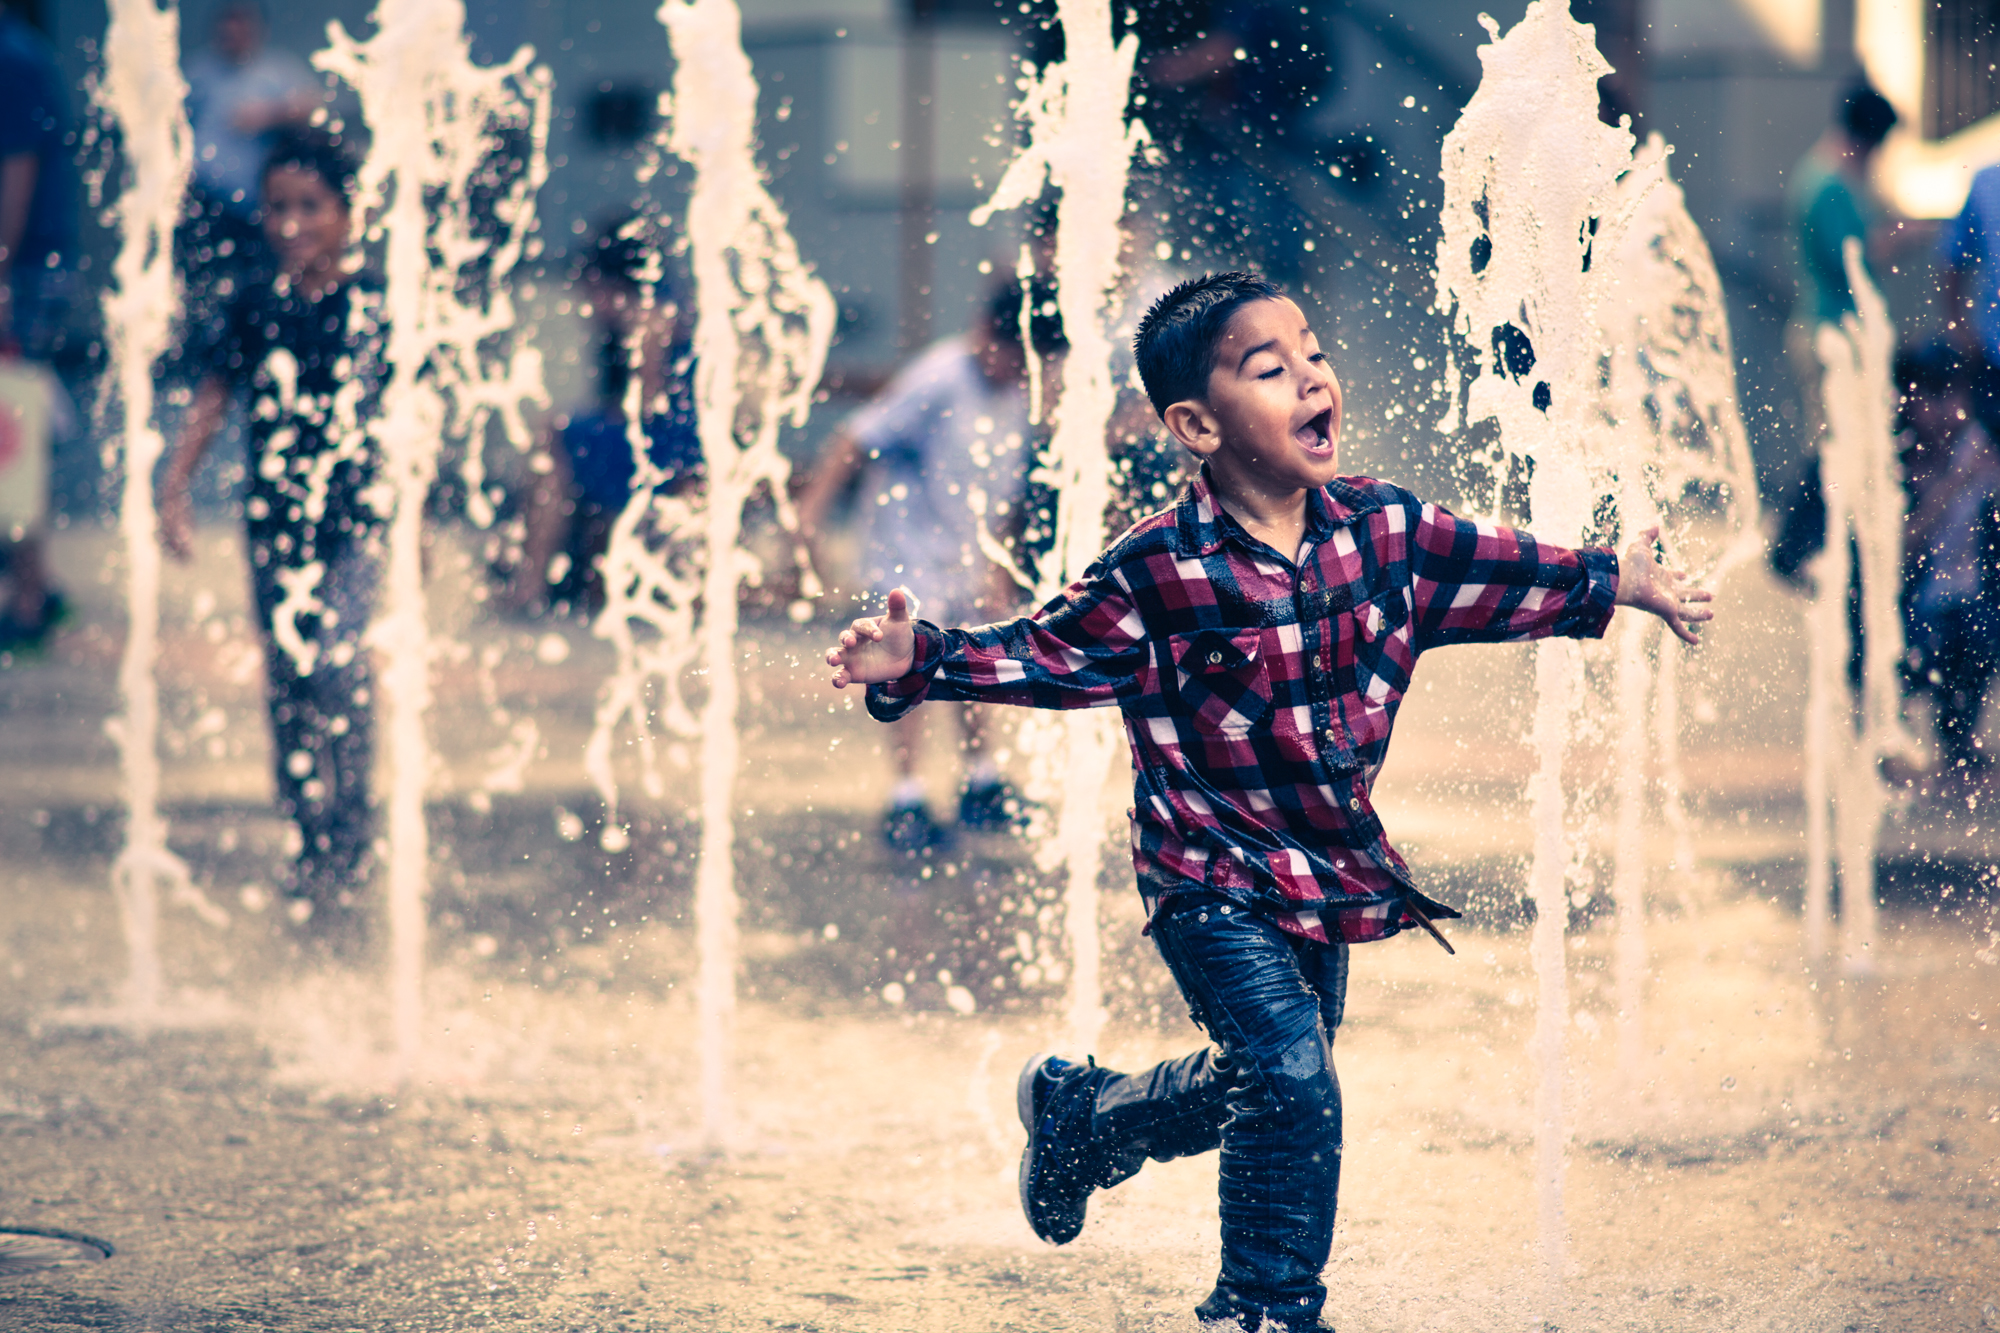 2012.11.03_CRB_FountainKids_IMG_6334.jpg